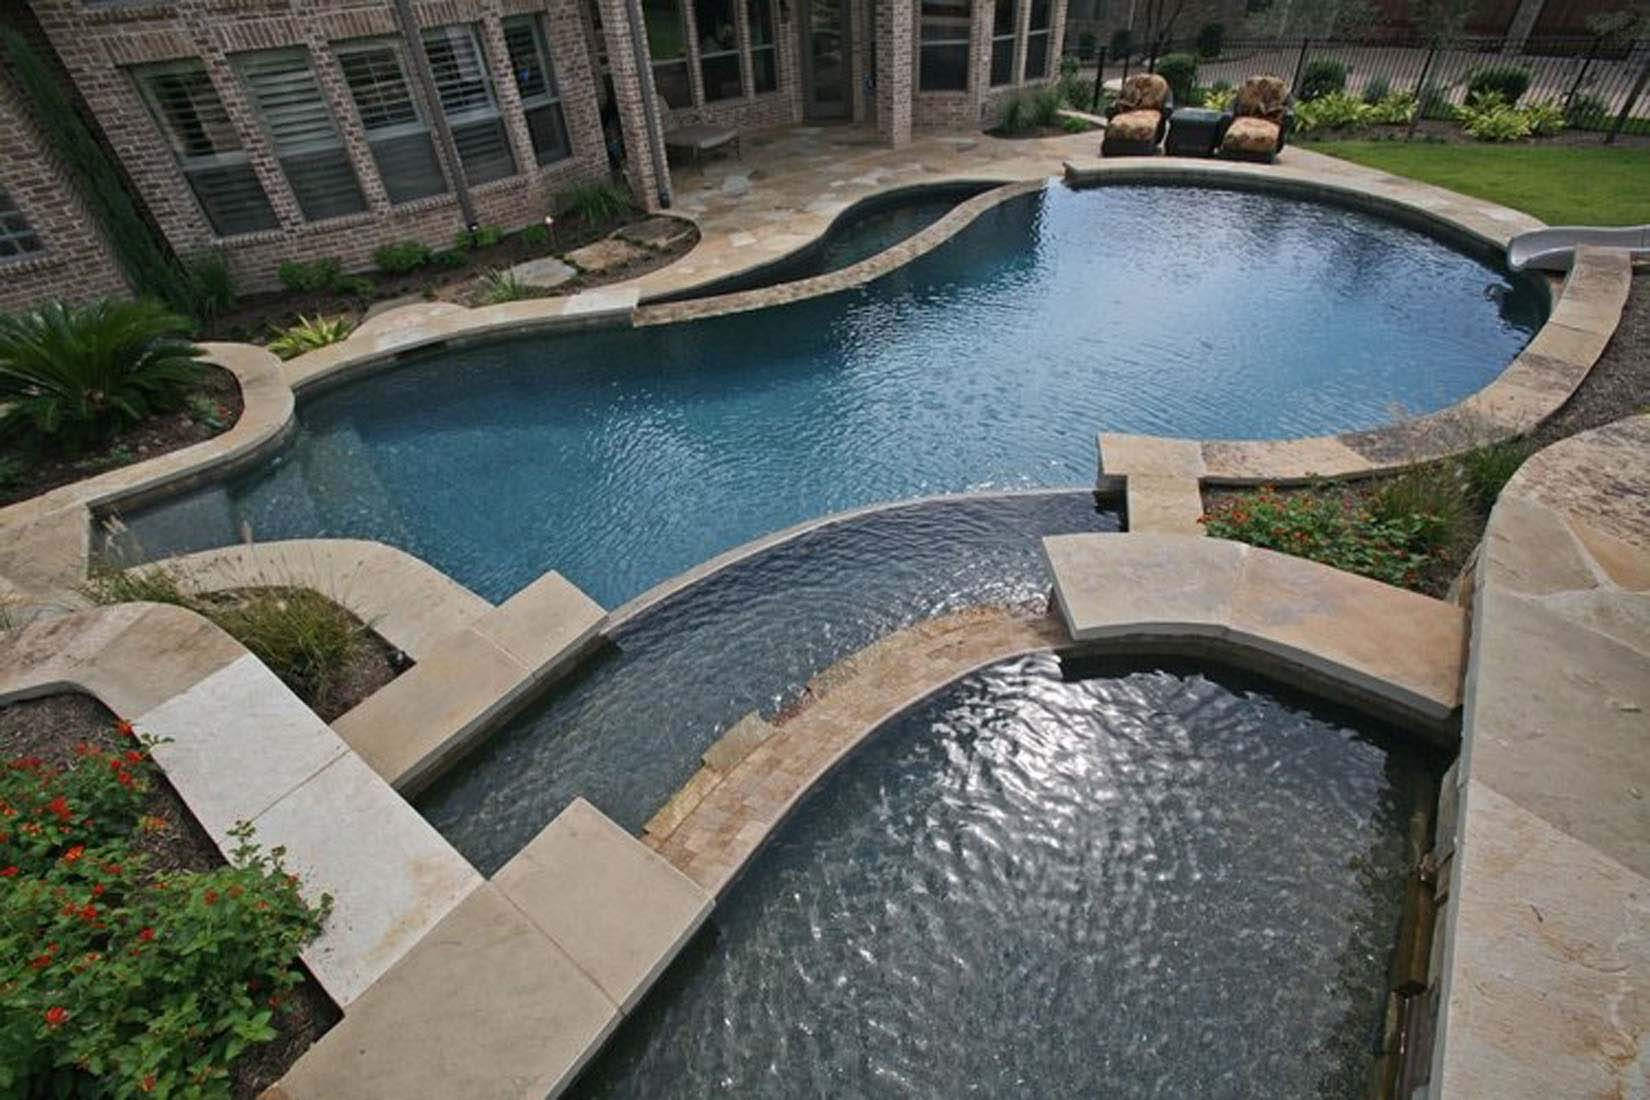 How to build your own swimming pools how to build your own for Design your own swimming pool